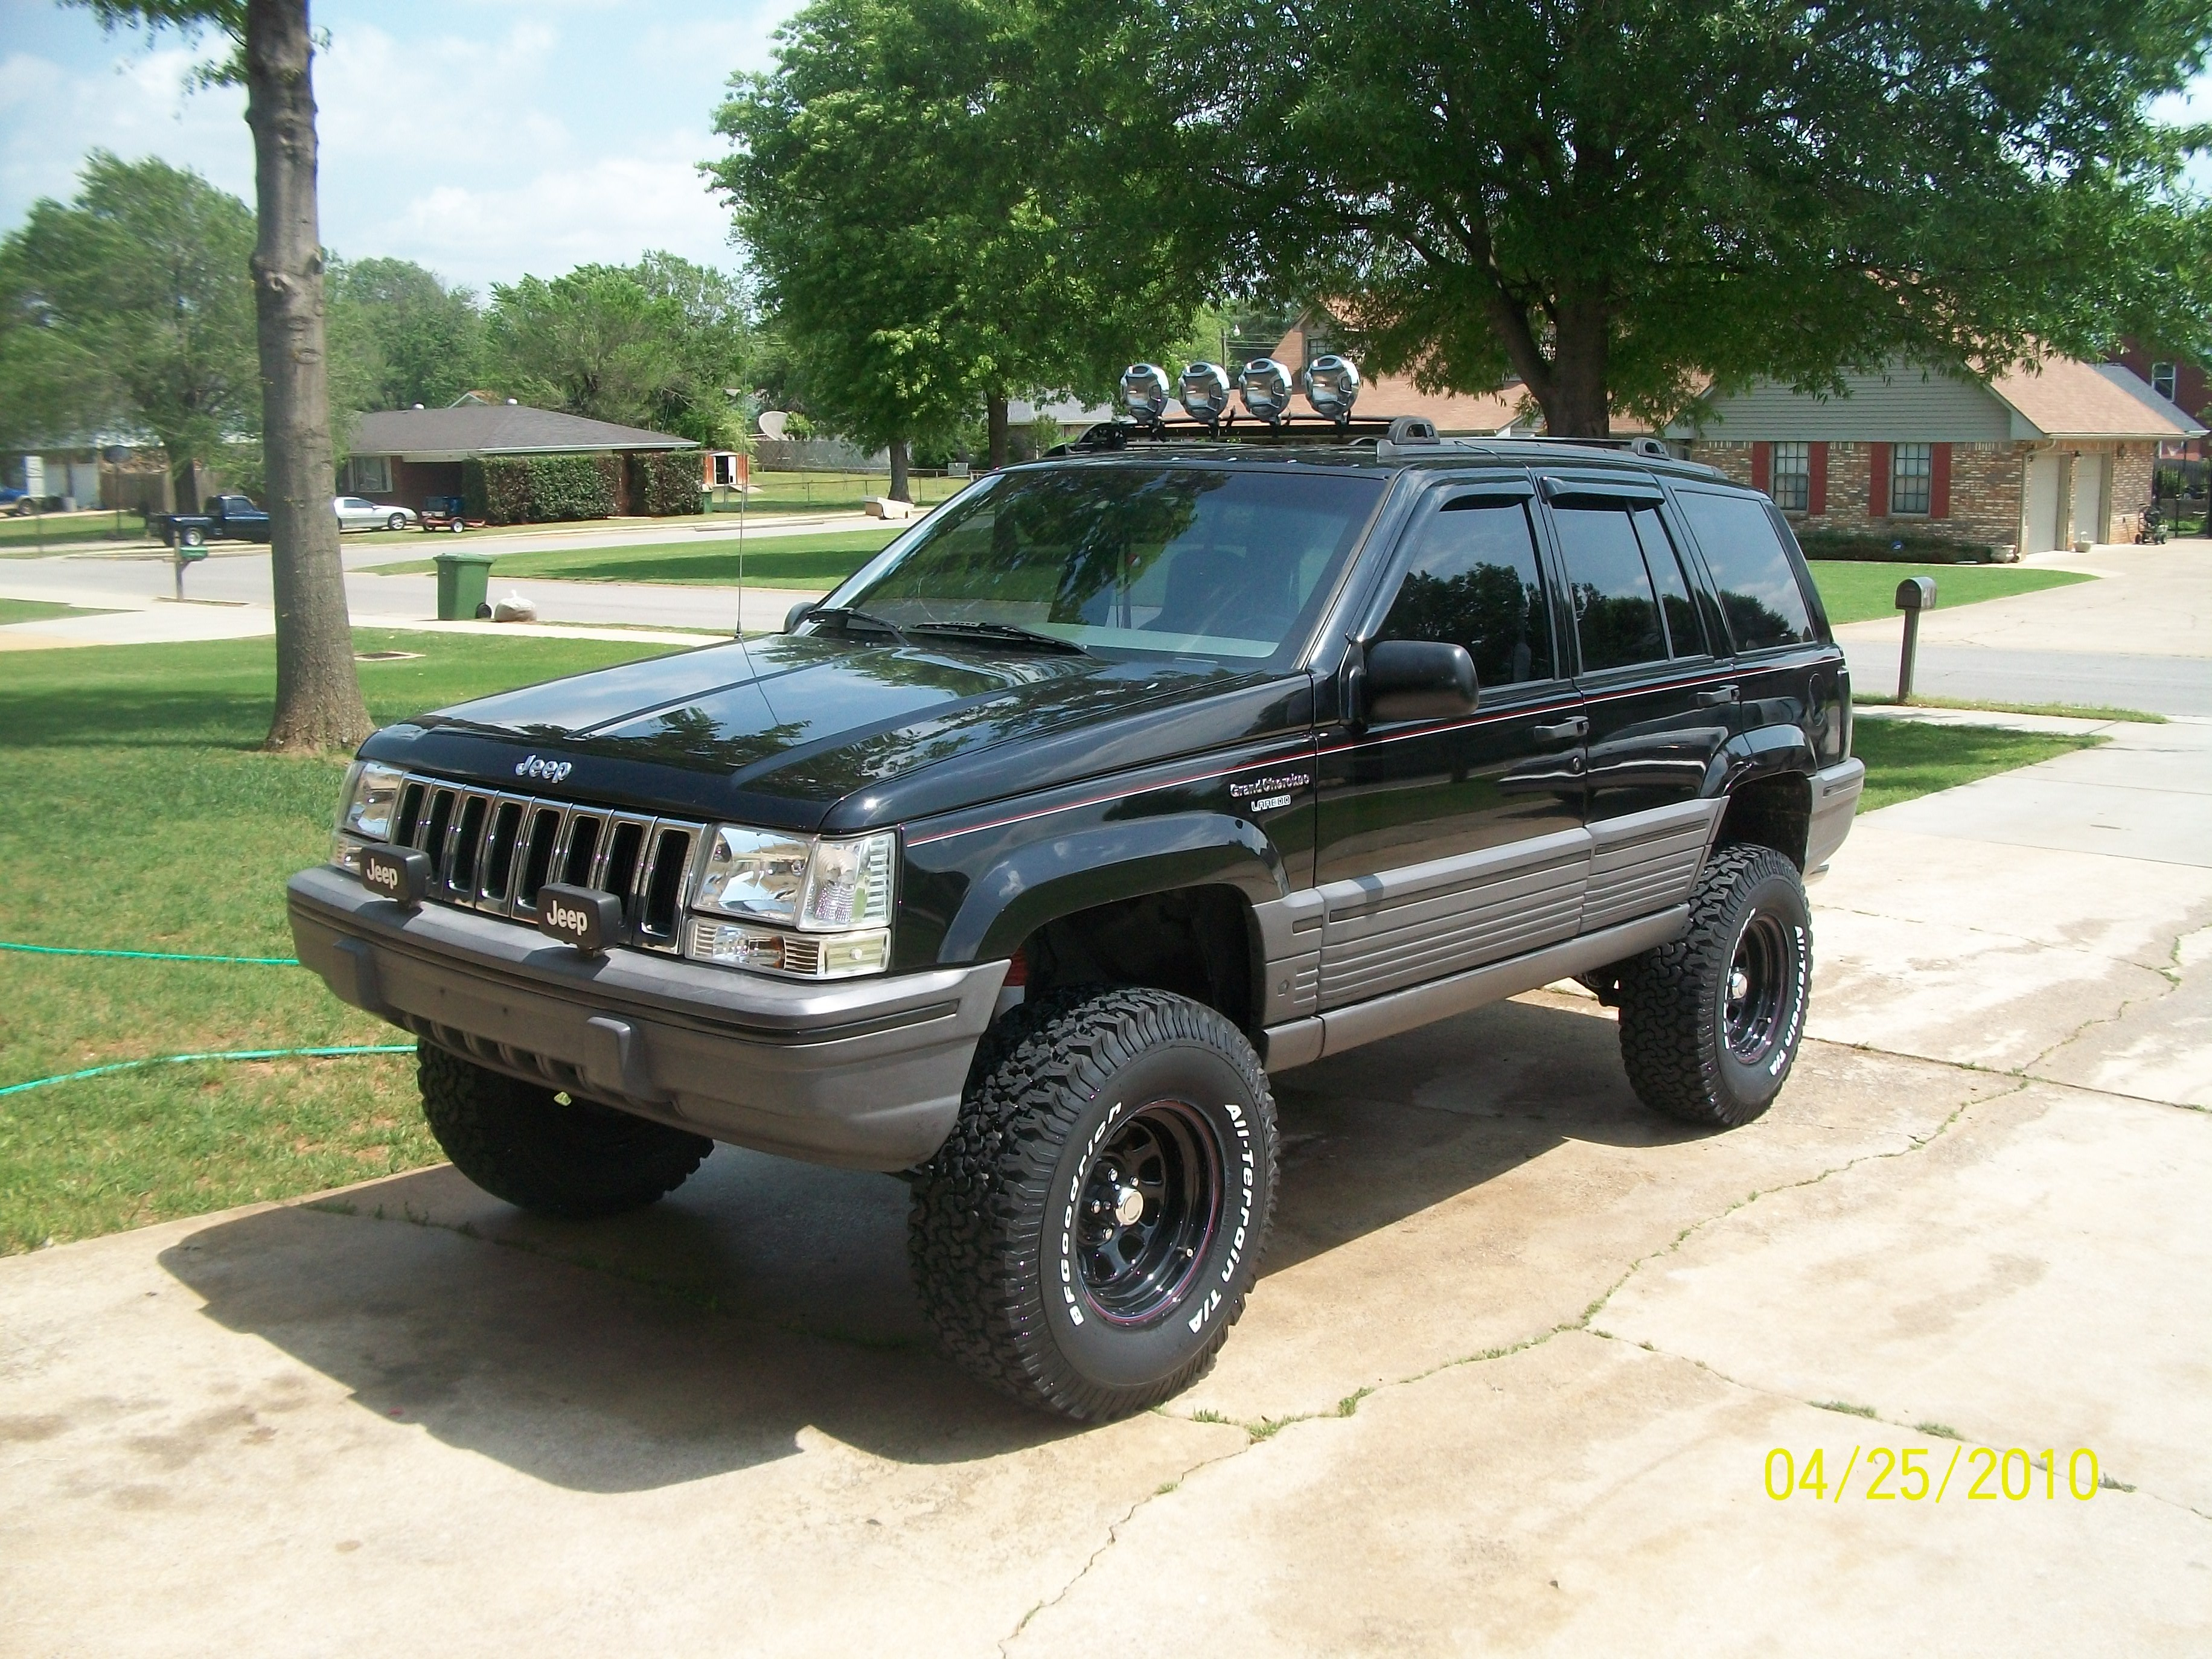 toybox91 1994 jeep grand cherokee specs photos modification info at cardomain. Black Bedroom Furniture Sets. Home Design Ideas